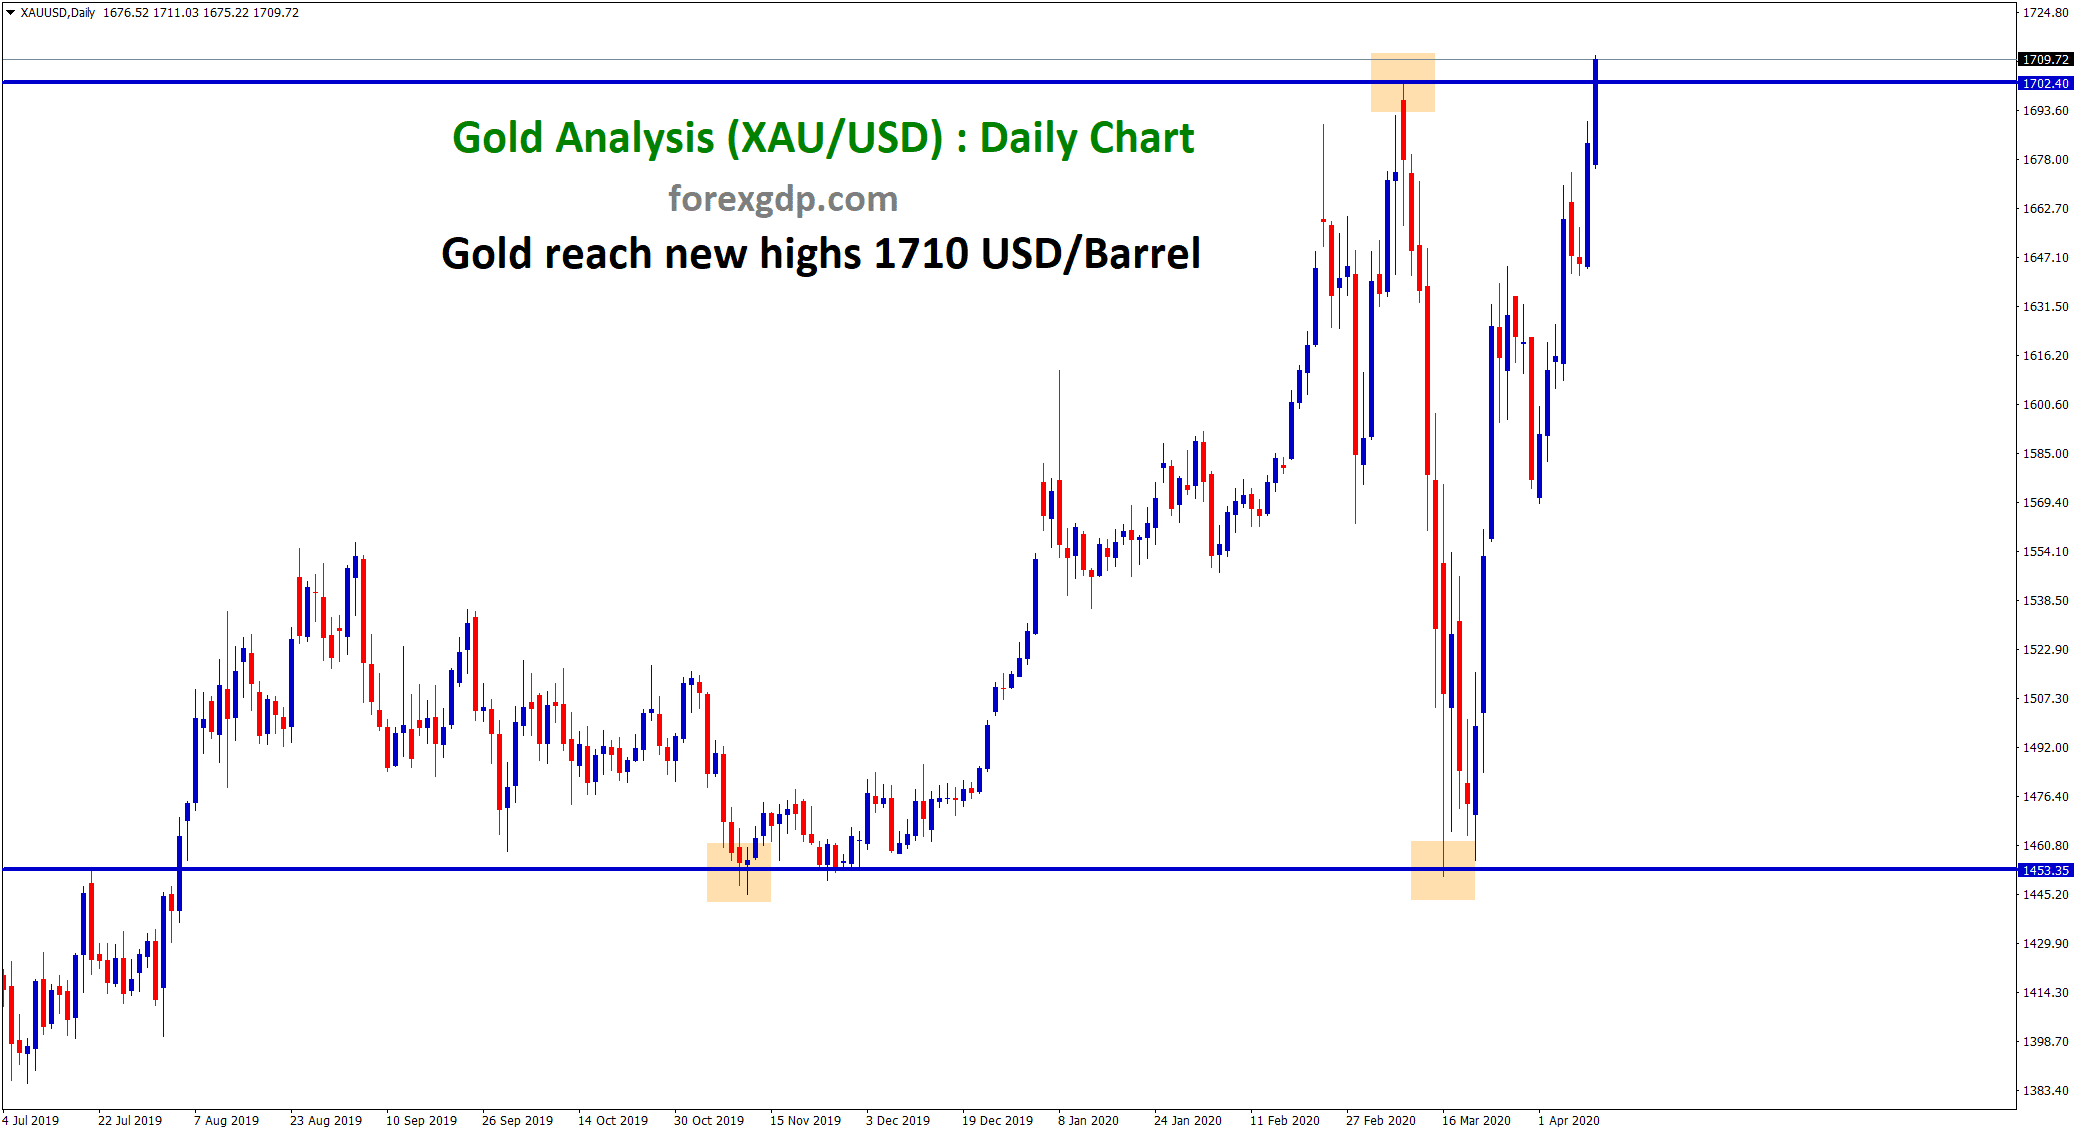 Gold XAUUSD rise to new highs 1710 USD per barrel